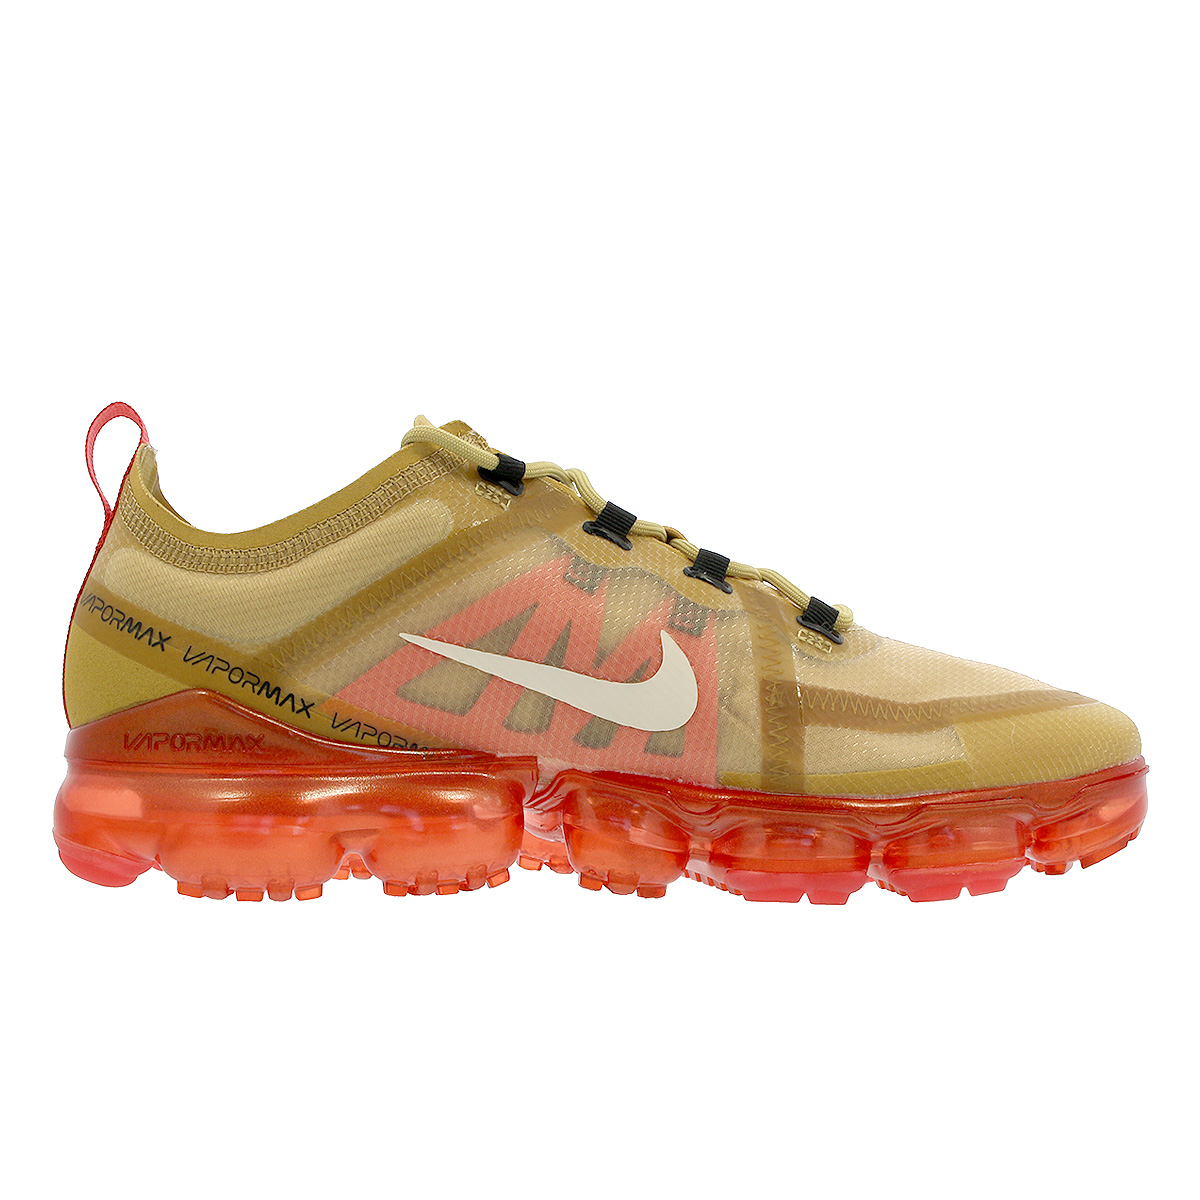 72d04fe23f ... NIKE AIR VAPORMAX 2019 Nike air vapor max 2019 CLUB GOLD/LIGHT CREAM ...